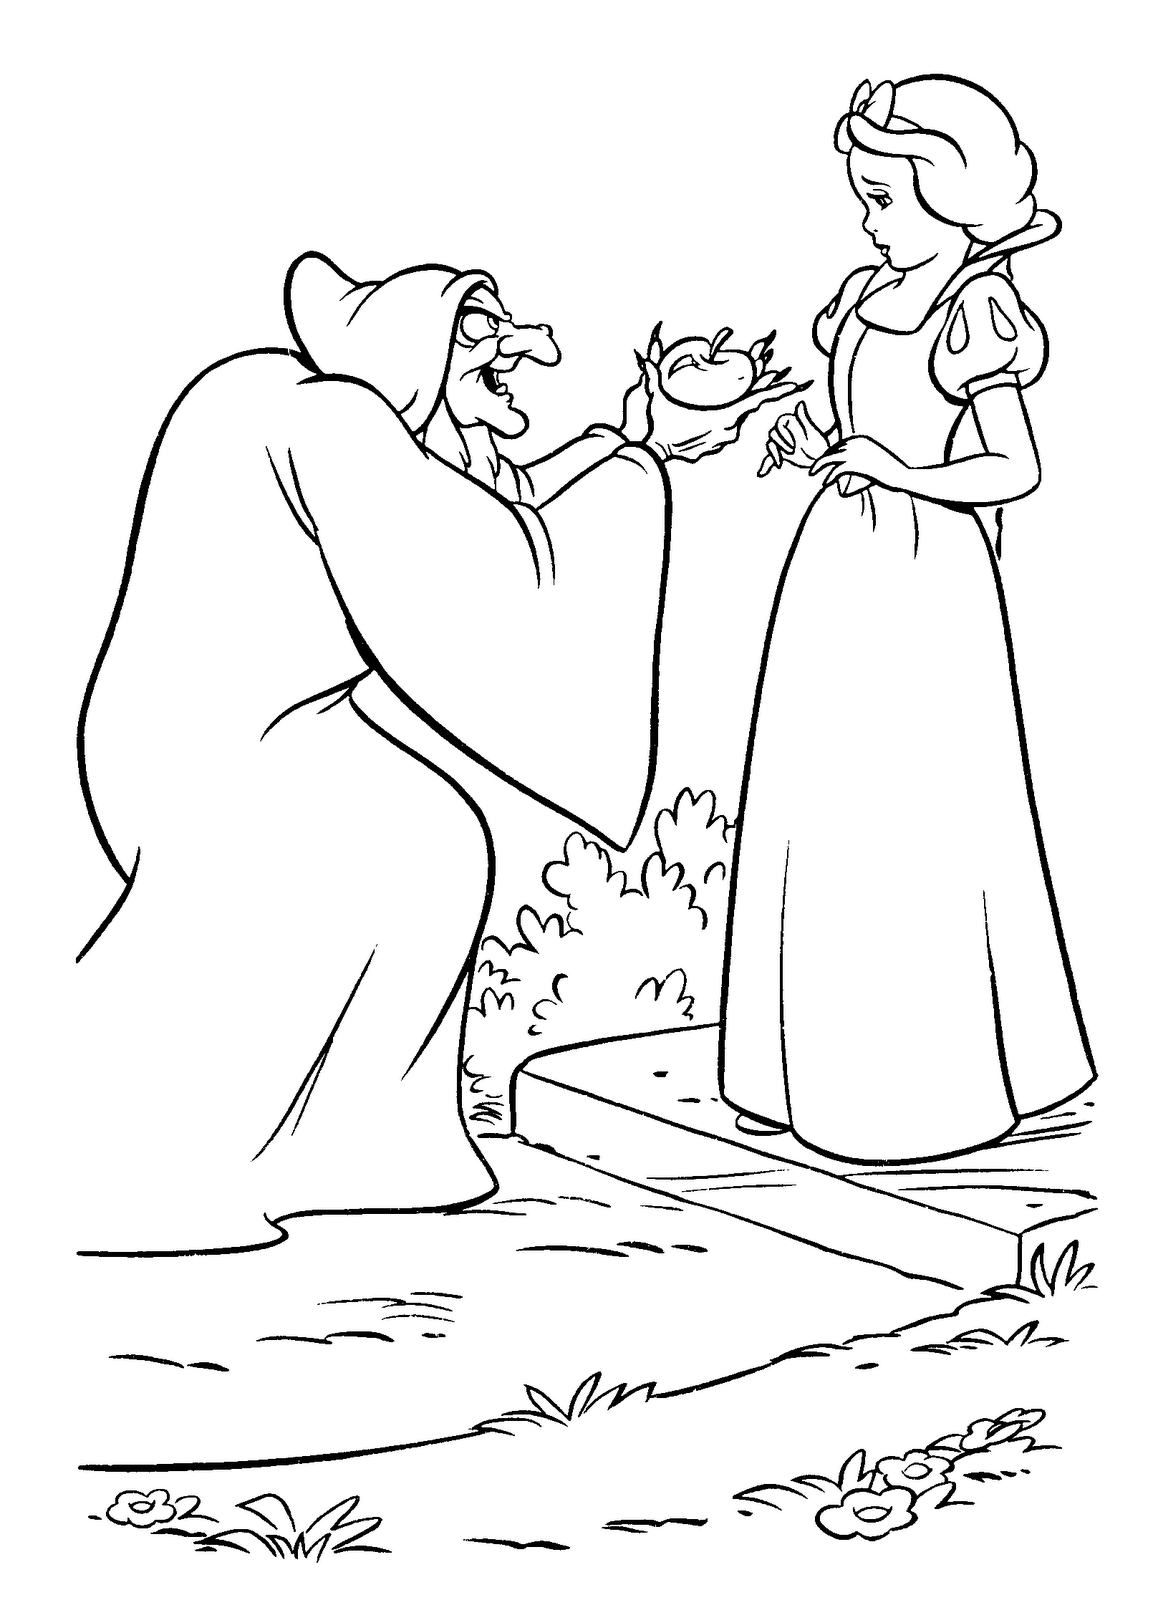 Blancanieves Y Bruja Witch Coloring Pages Disney Coloring Pages Snow White Coloring Pages